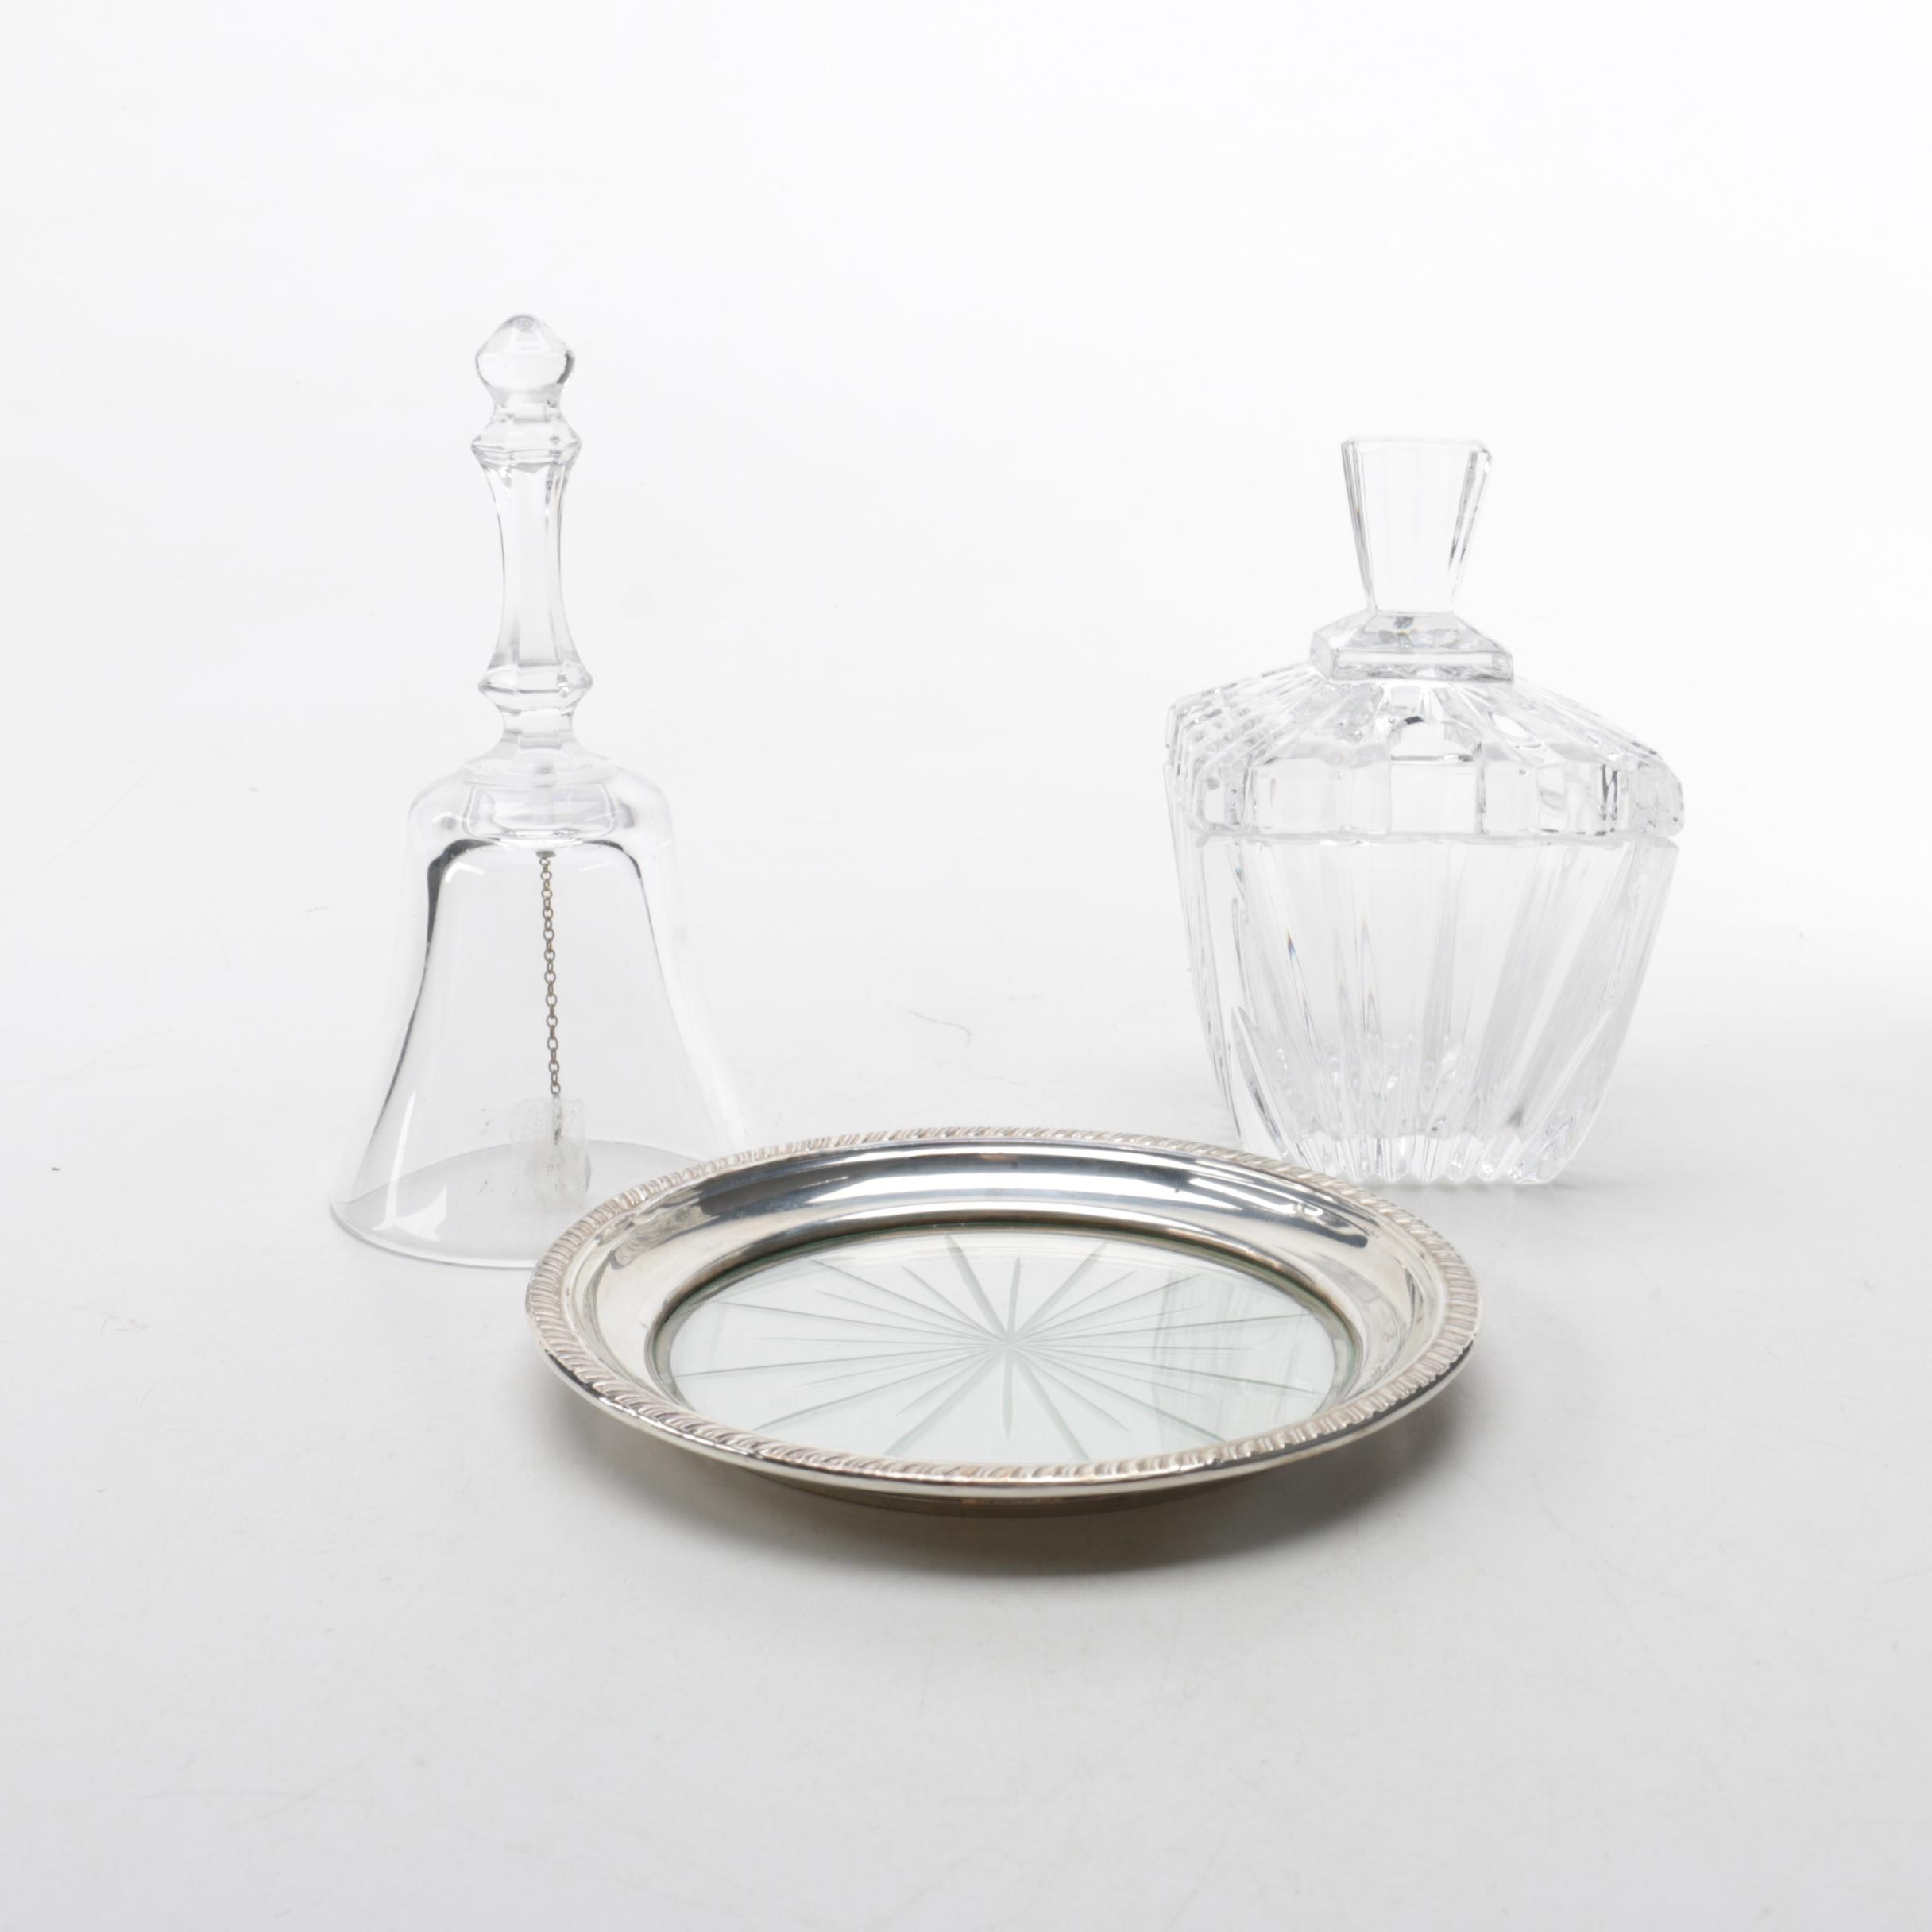 Sterling Silver Rimmed Coaster with Glass Jam Jar and Bell